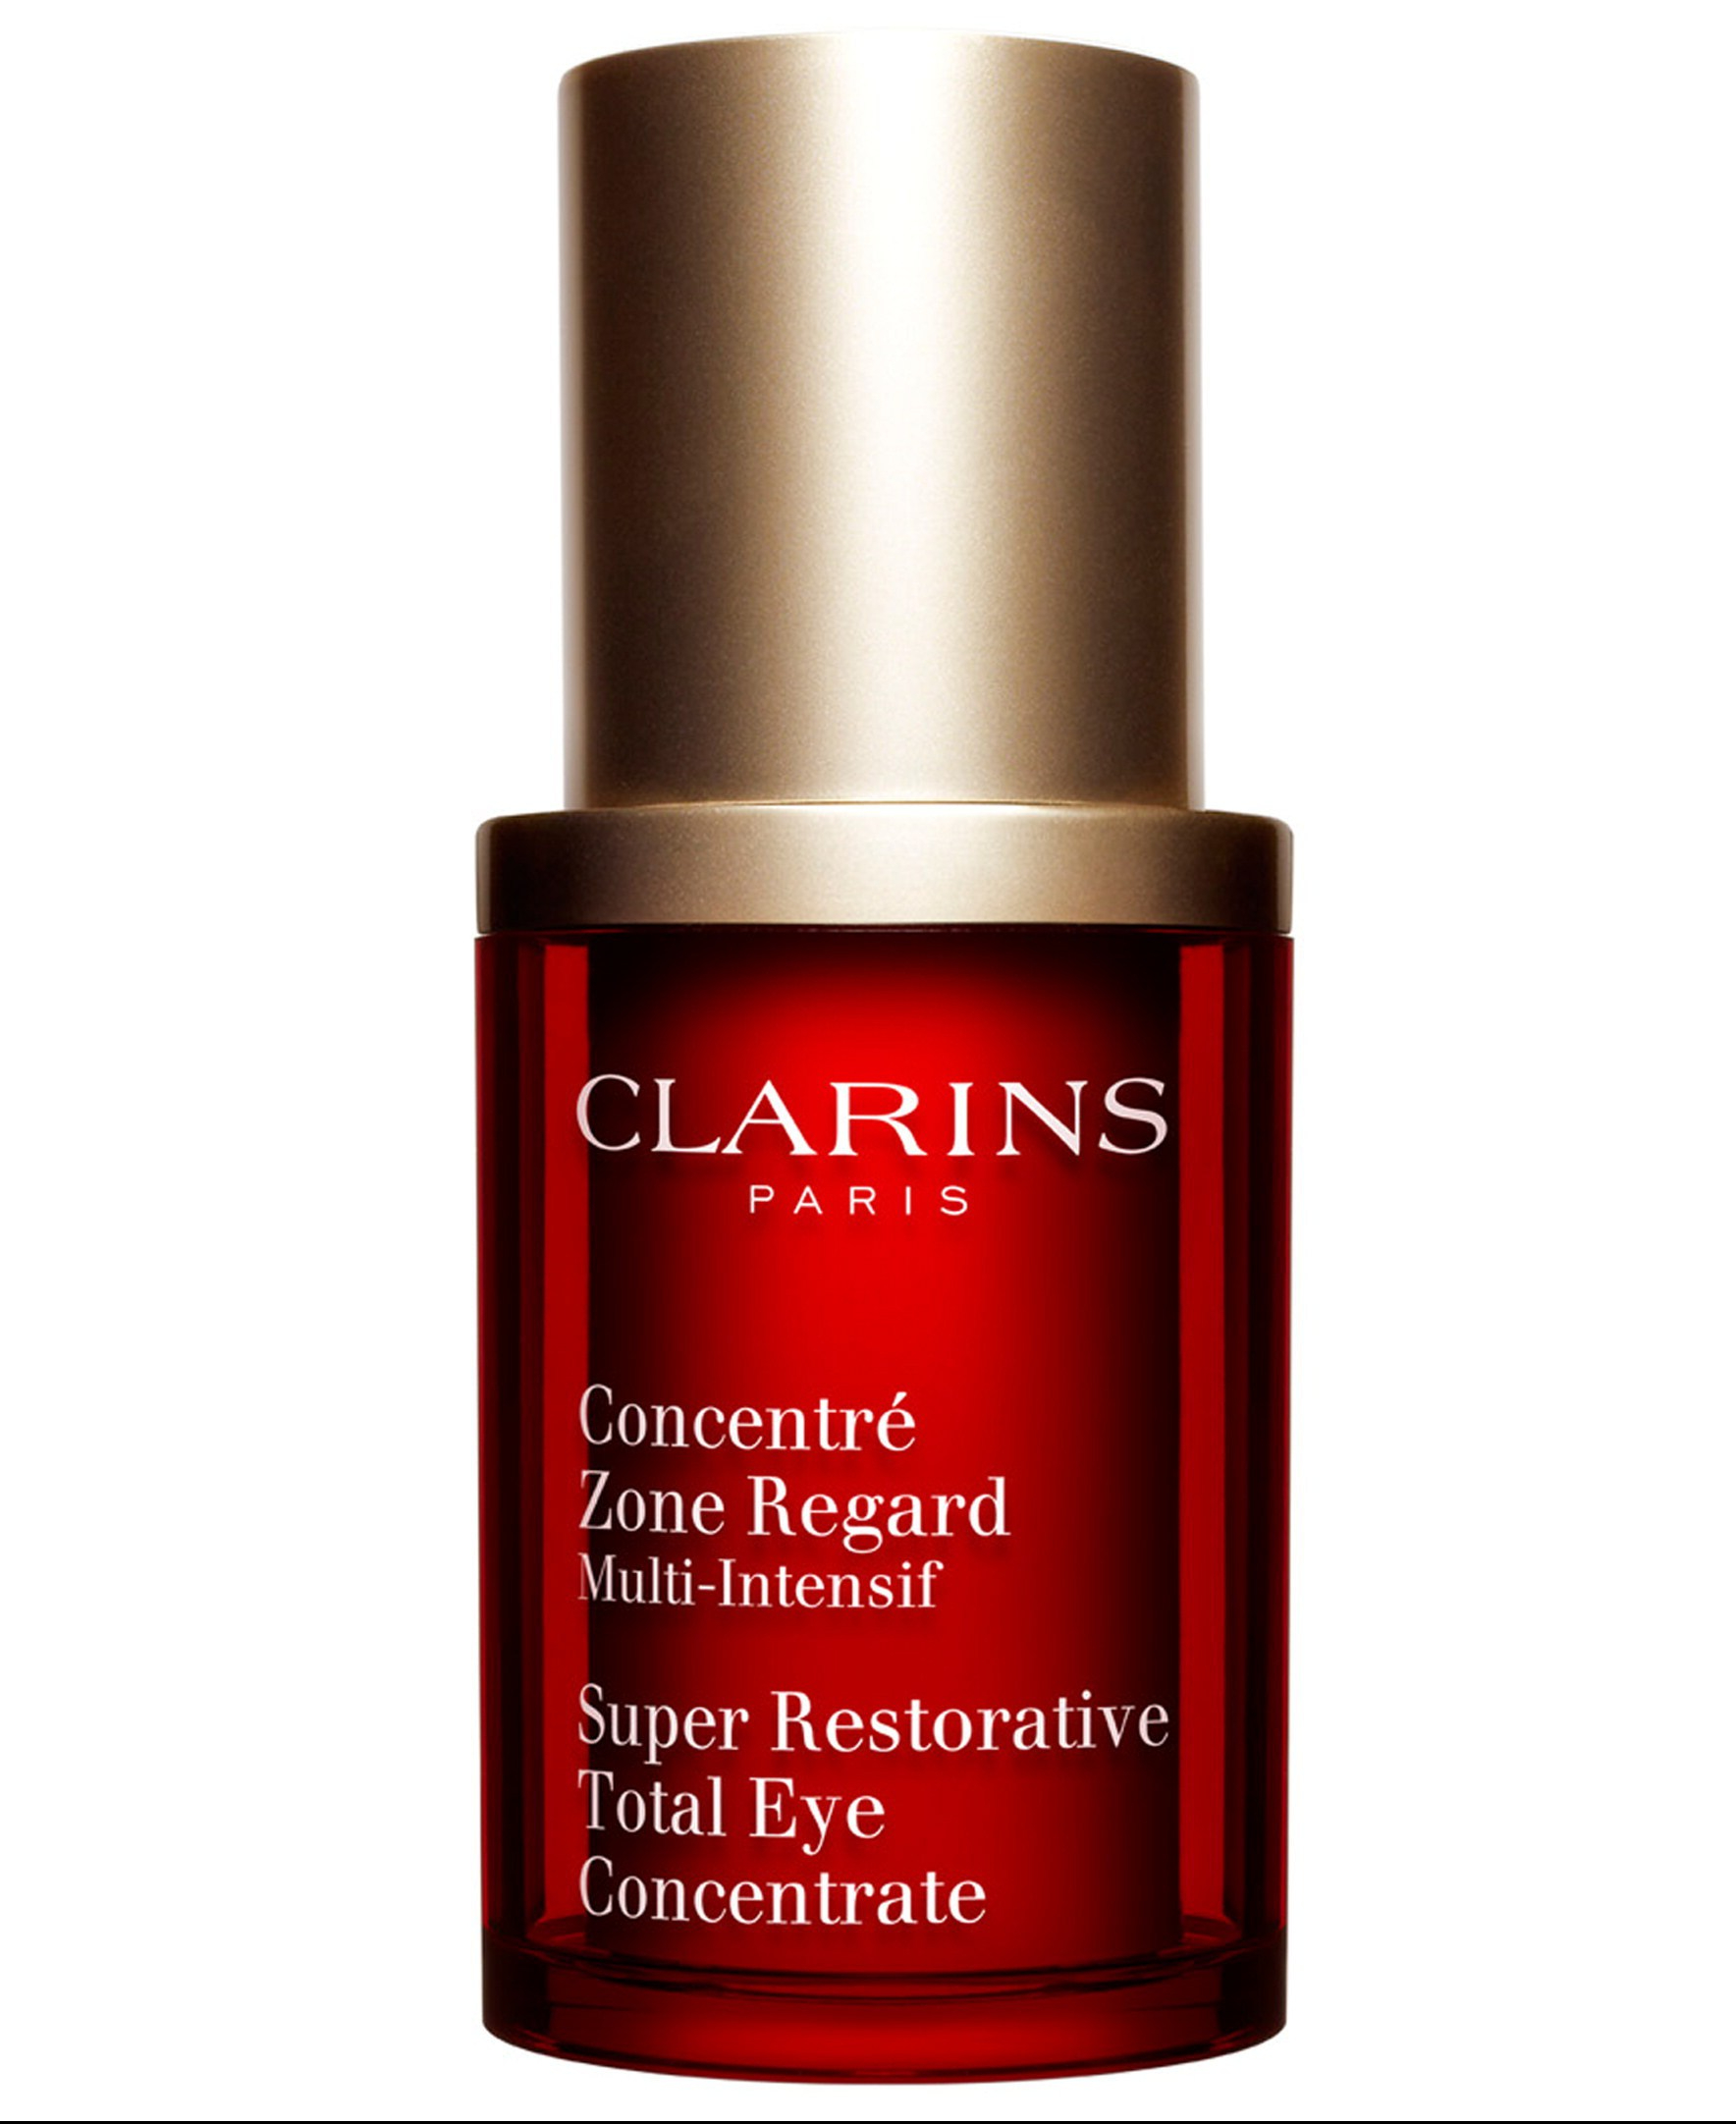 macy's 2 - Clarins_Super_Restorative_Total_Eye_Concentrate